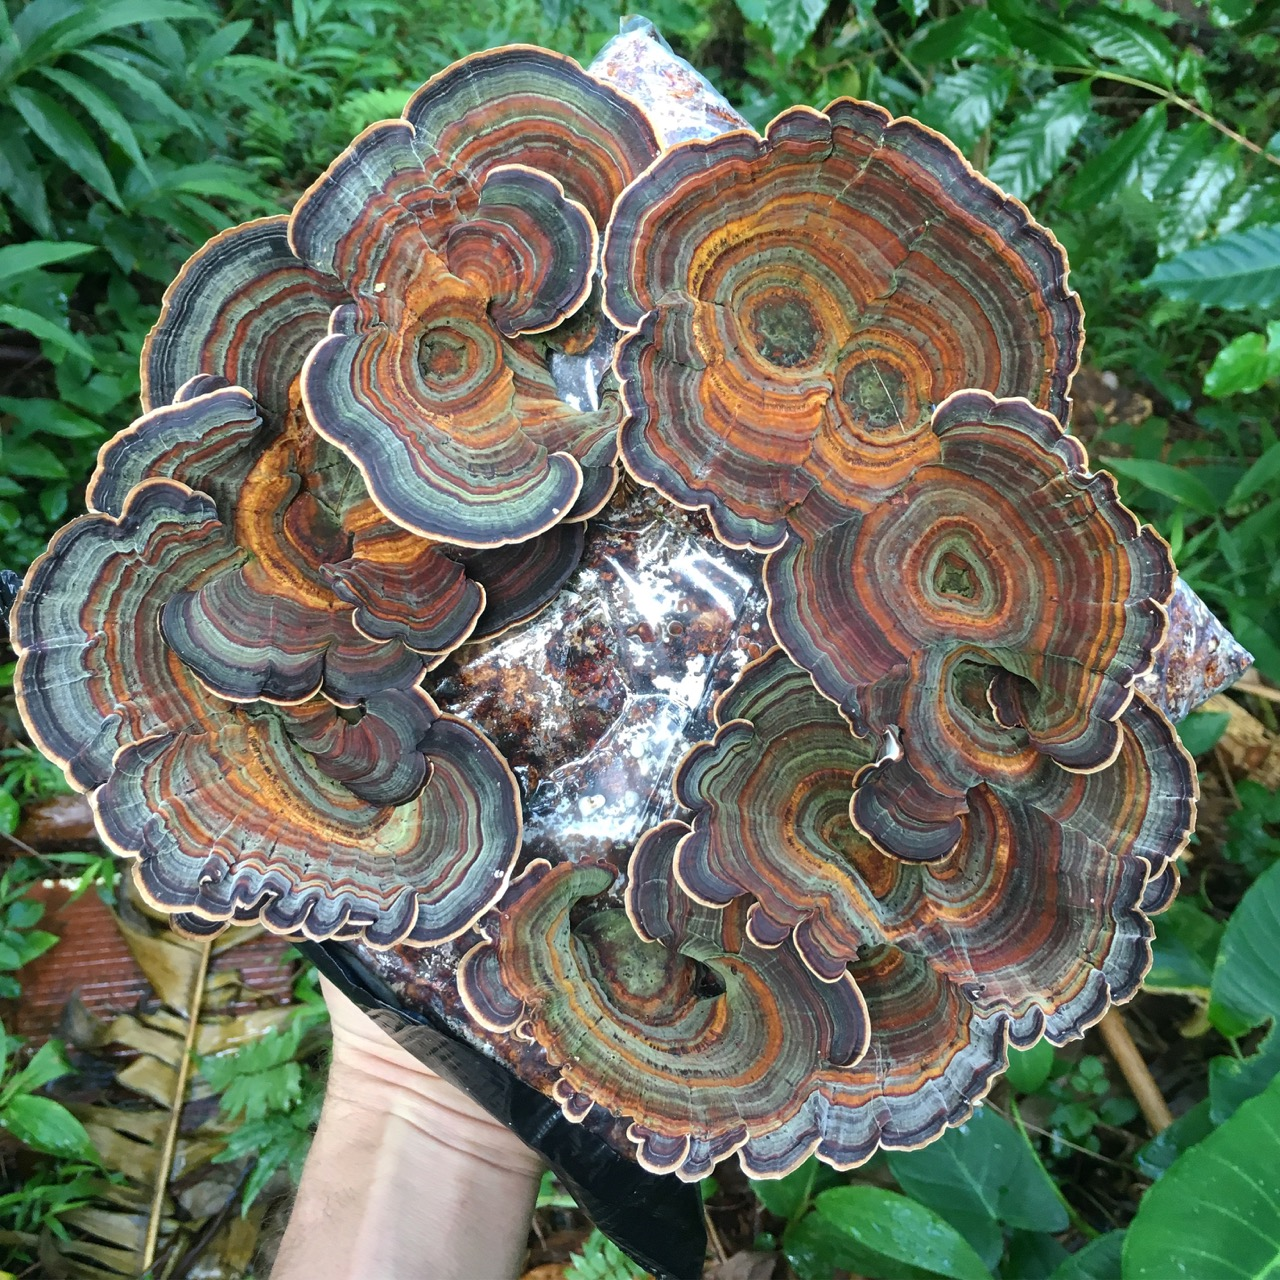 MUSHROOMS AS MEDICINE: CHRIS RITSON IN CONVERSATION WITH ISABELLA HUGHES,THURSDAY APRIL 12 - 5:30 - 6:30 PMCo-presented by CONTACT and HBF,Chris Ritson, who was raised on Oʻahu and continues to live and work on Tantalus, will discuss his practice in conversation with Isabella Ellaheh Hughes, which is informed by society's relationship to nature, which ranges from video and installation to living, generative sculpture.An alumni artist of Honolulu Biennial 2017 with his Mushroom Paintings, Ritson is exhibiting a continuation of his living Mushroom Paintings in Contact Zone.This event is FREE and open to the public, but space is limited to 25. Please RSVP to vip@honolulubiennial.org to reserve your seat.Located at Luxury Row, 2124 Kalakaua Avenue.Free parking available at Luxury Row valet on Kalaimoku.